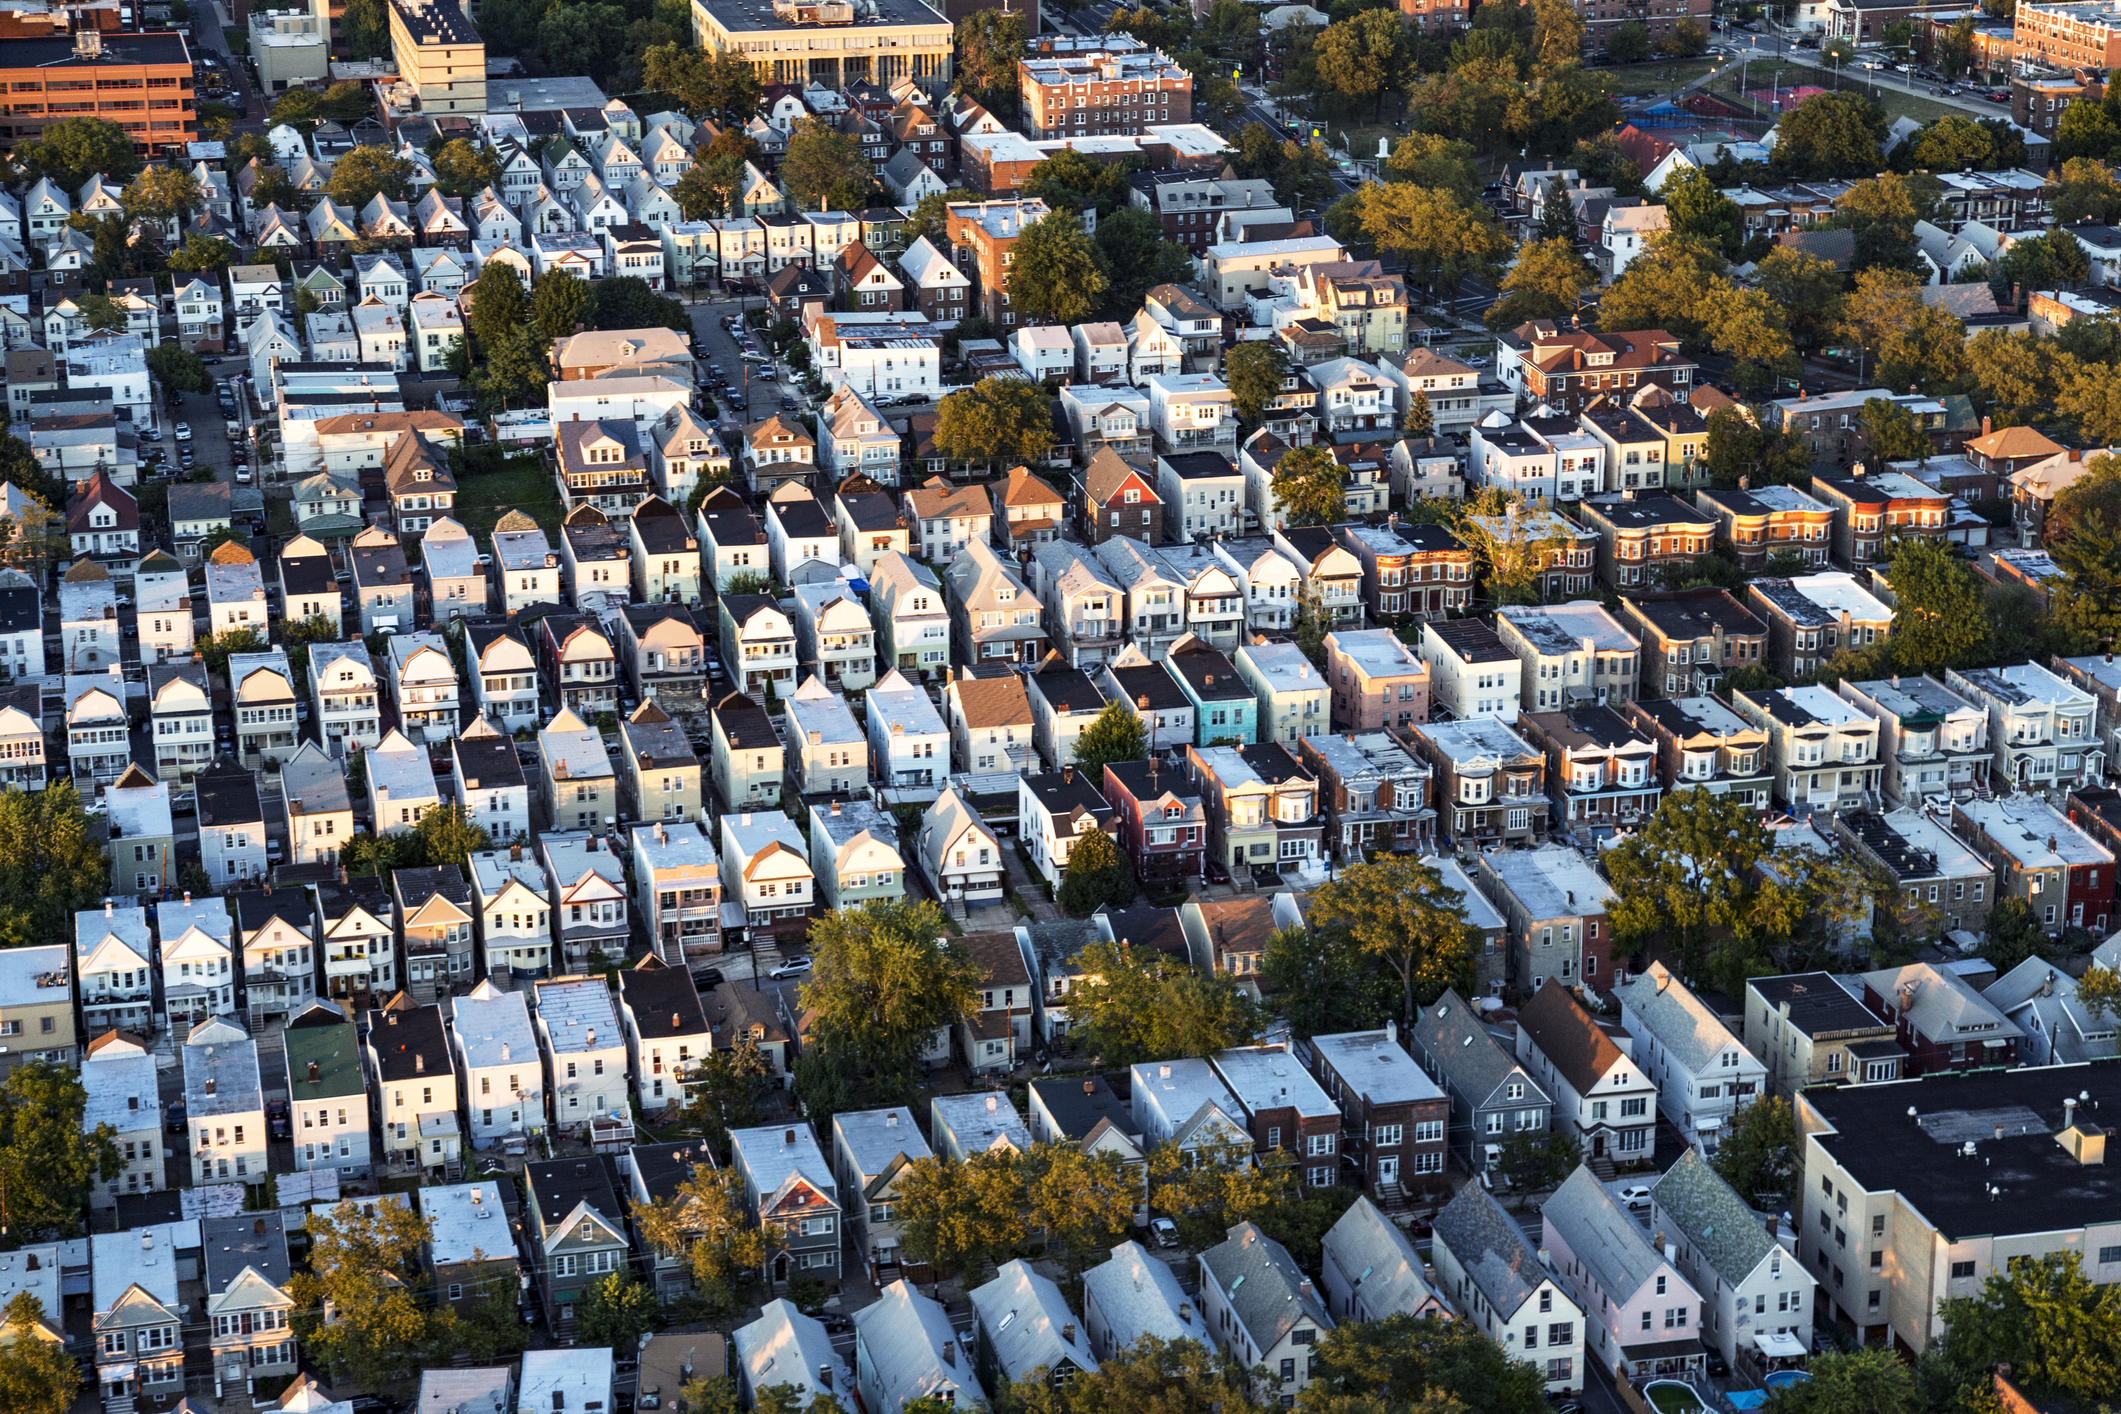 Aerial view of a dense residential district